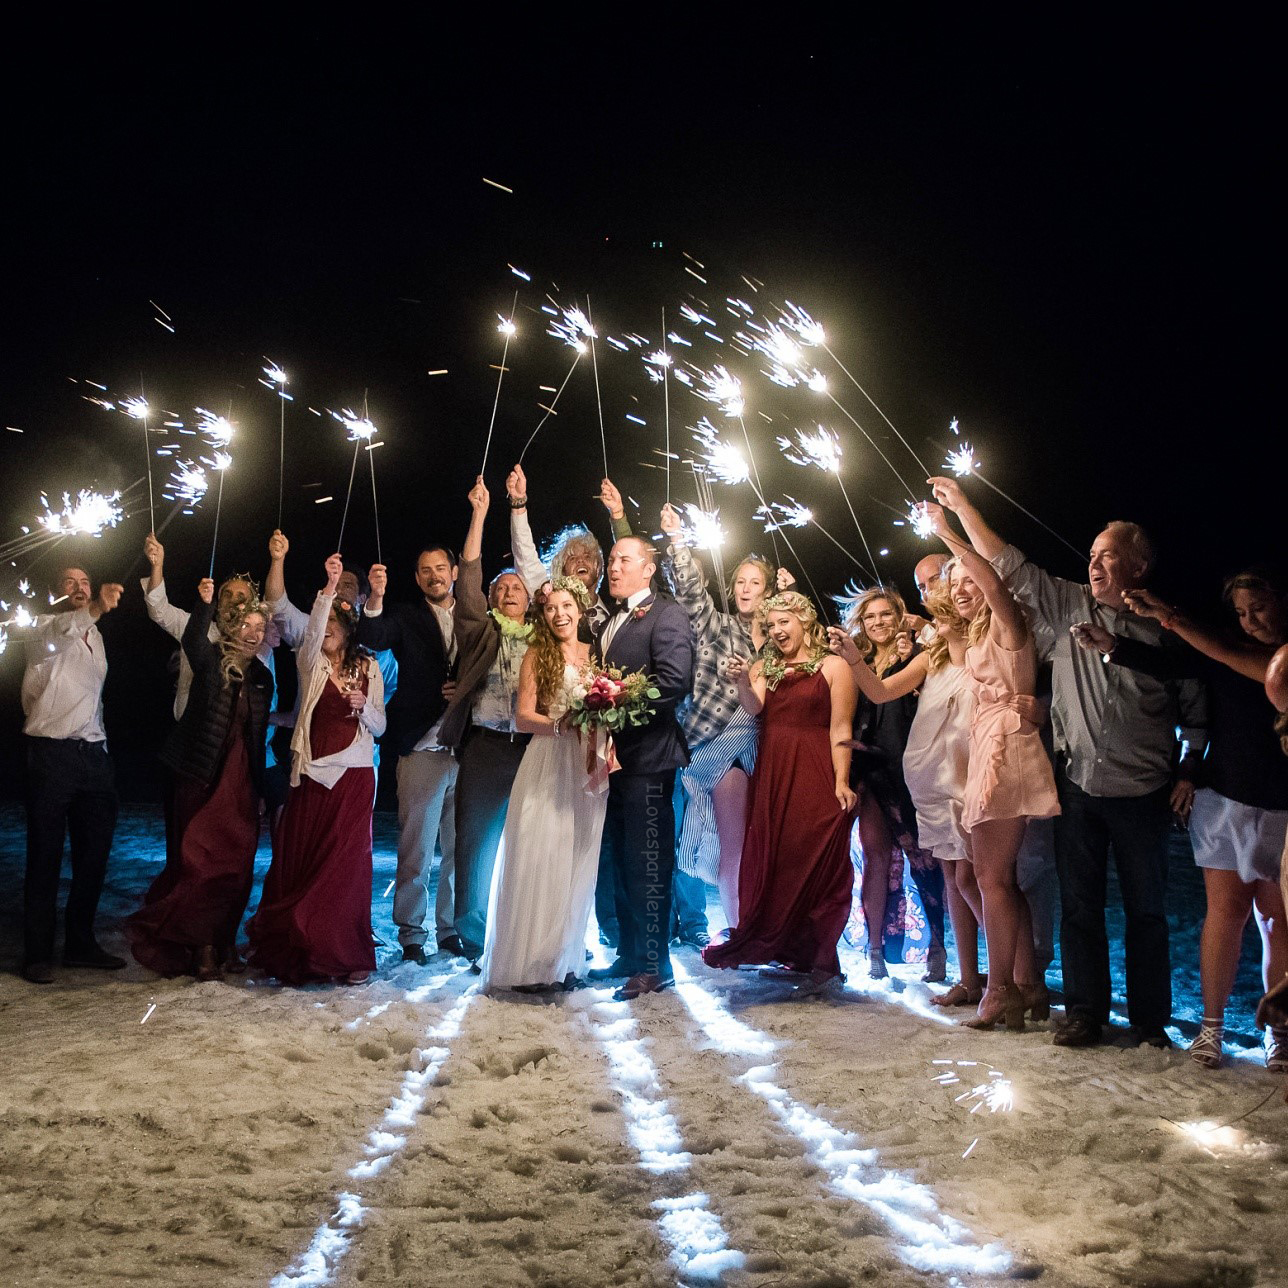 Wedding Sparklers Blog Wedding Sparklers Outlet